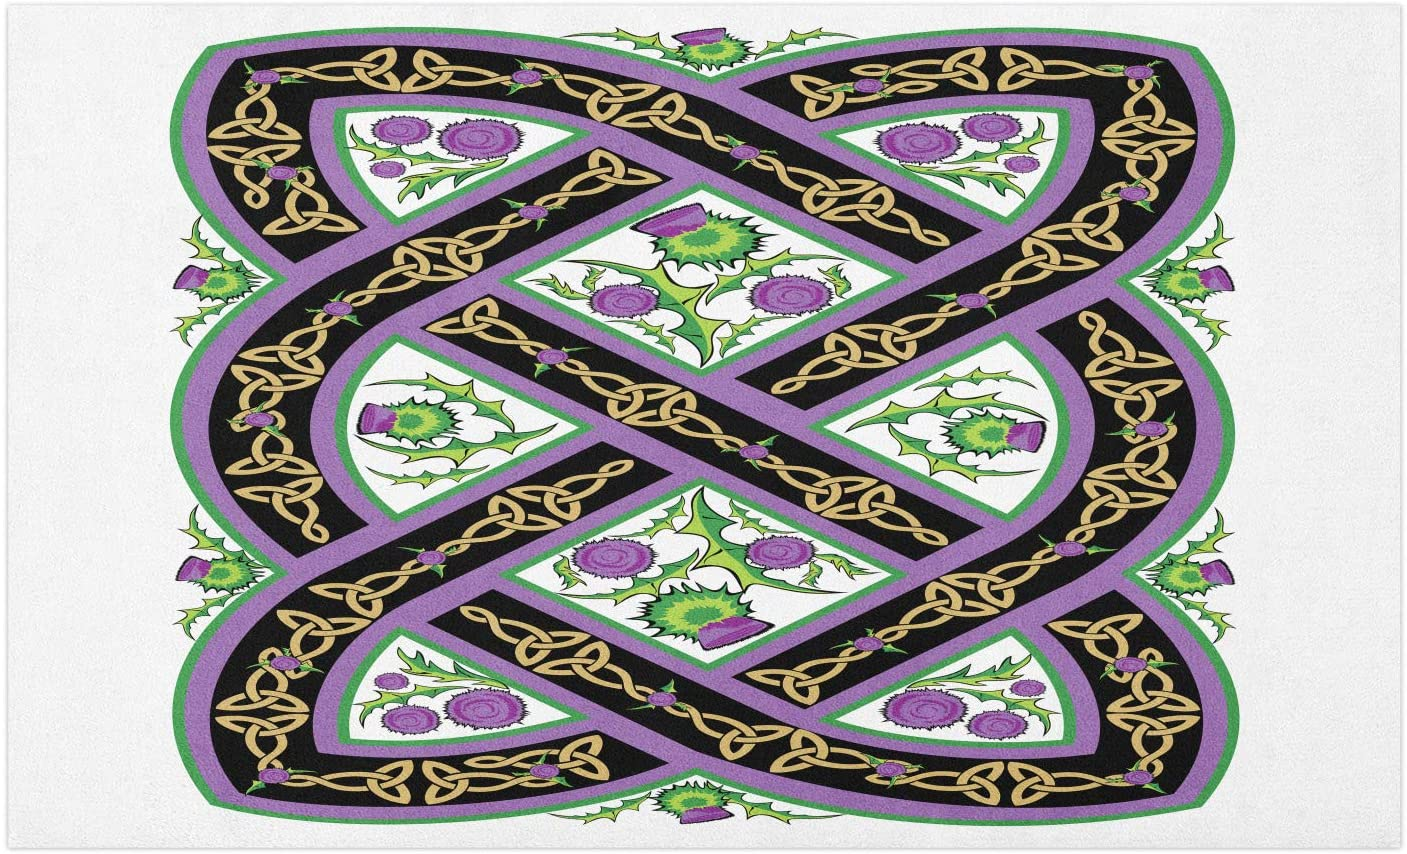 Ambesonne Scotland Doormat, Celtic Traditional Royal Pattern with Flowers Thistle Culture Ornamental Art, Decorative Polyester Floor Mat with Non-Skid Backing, 30